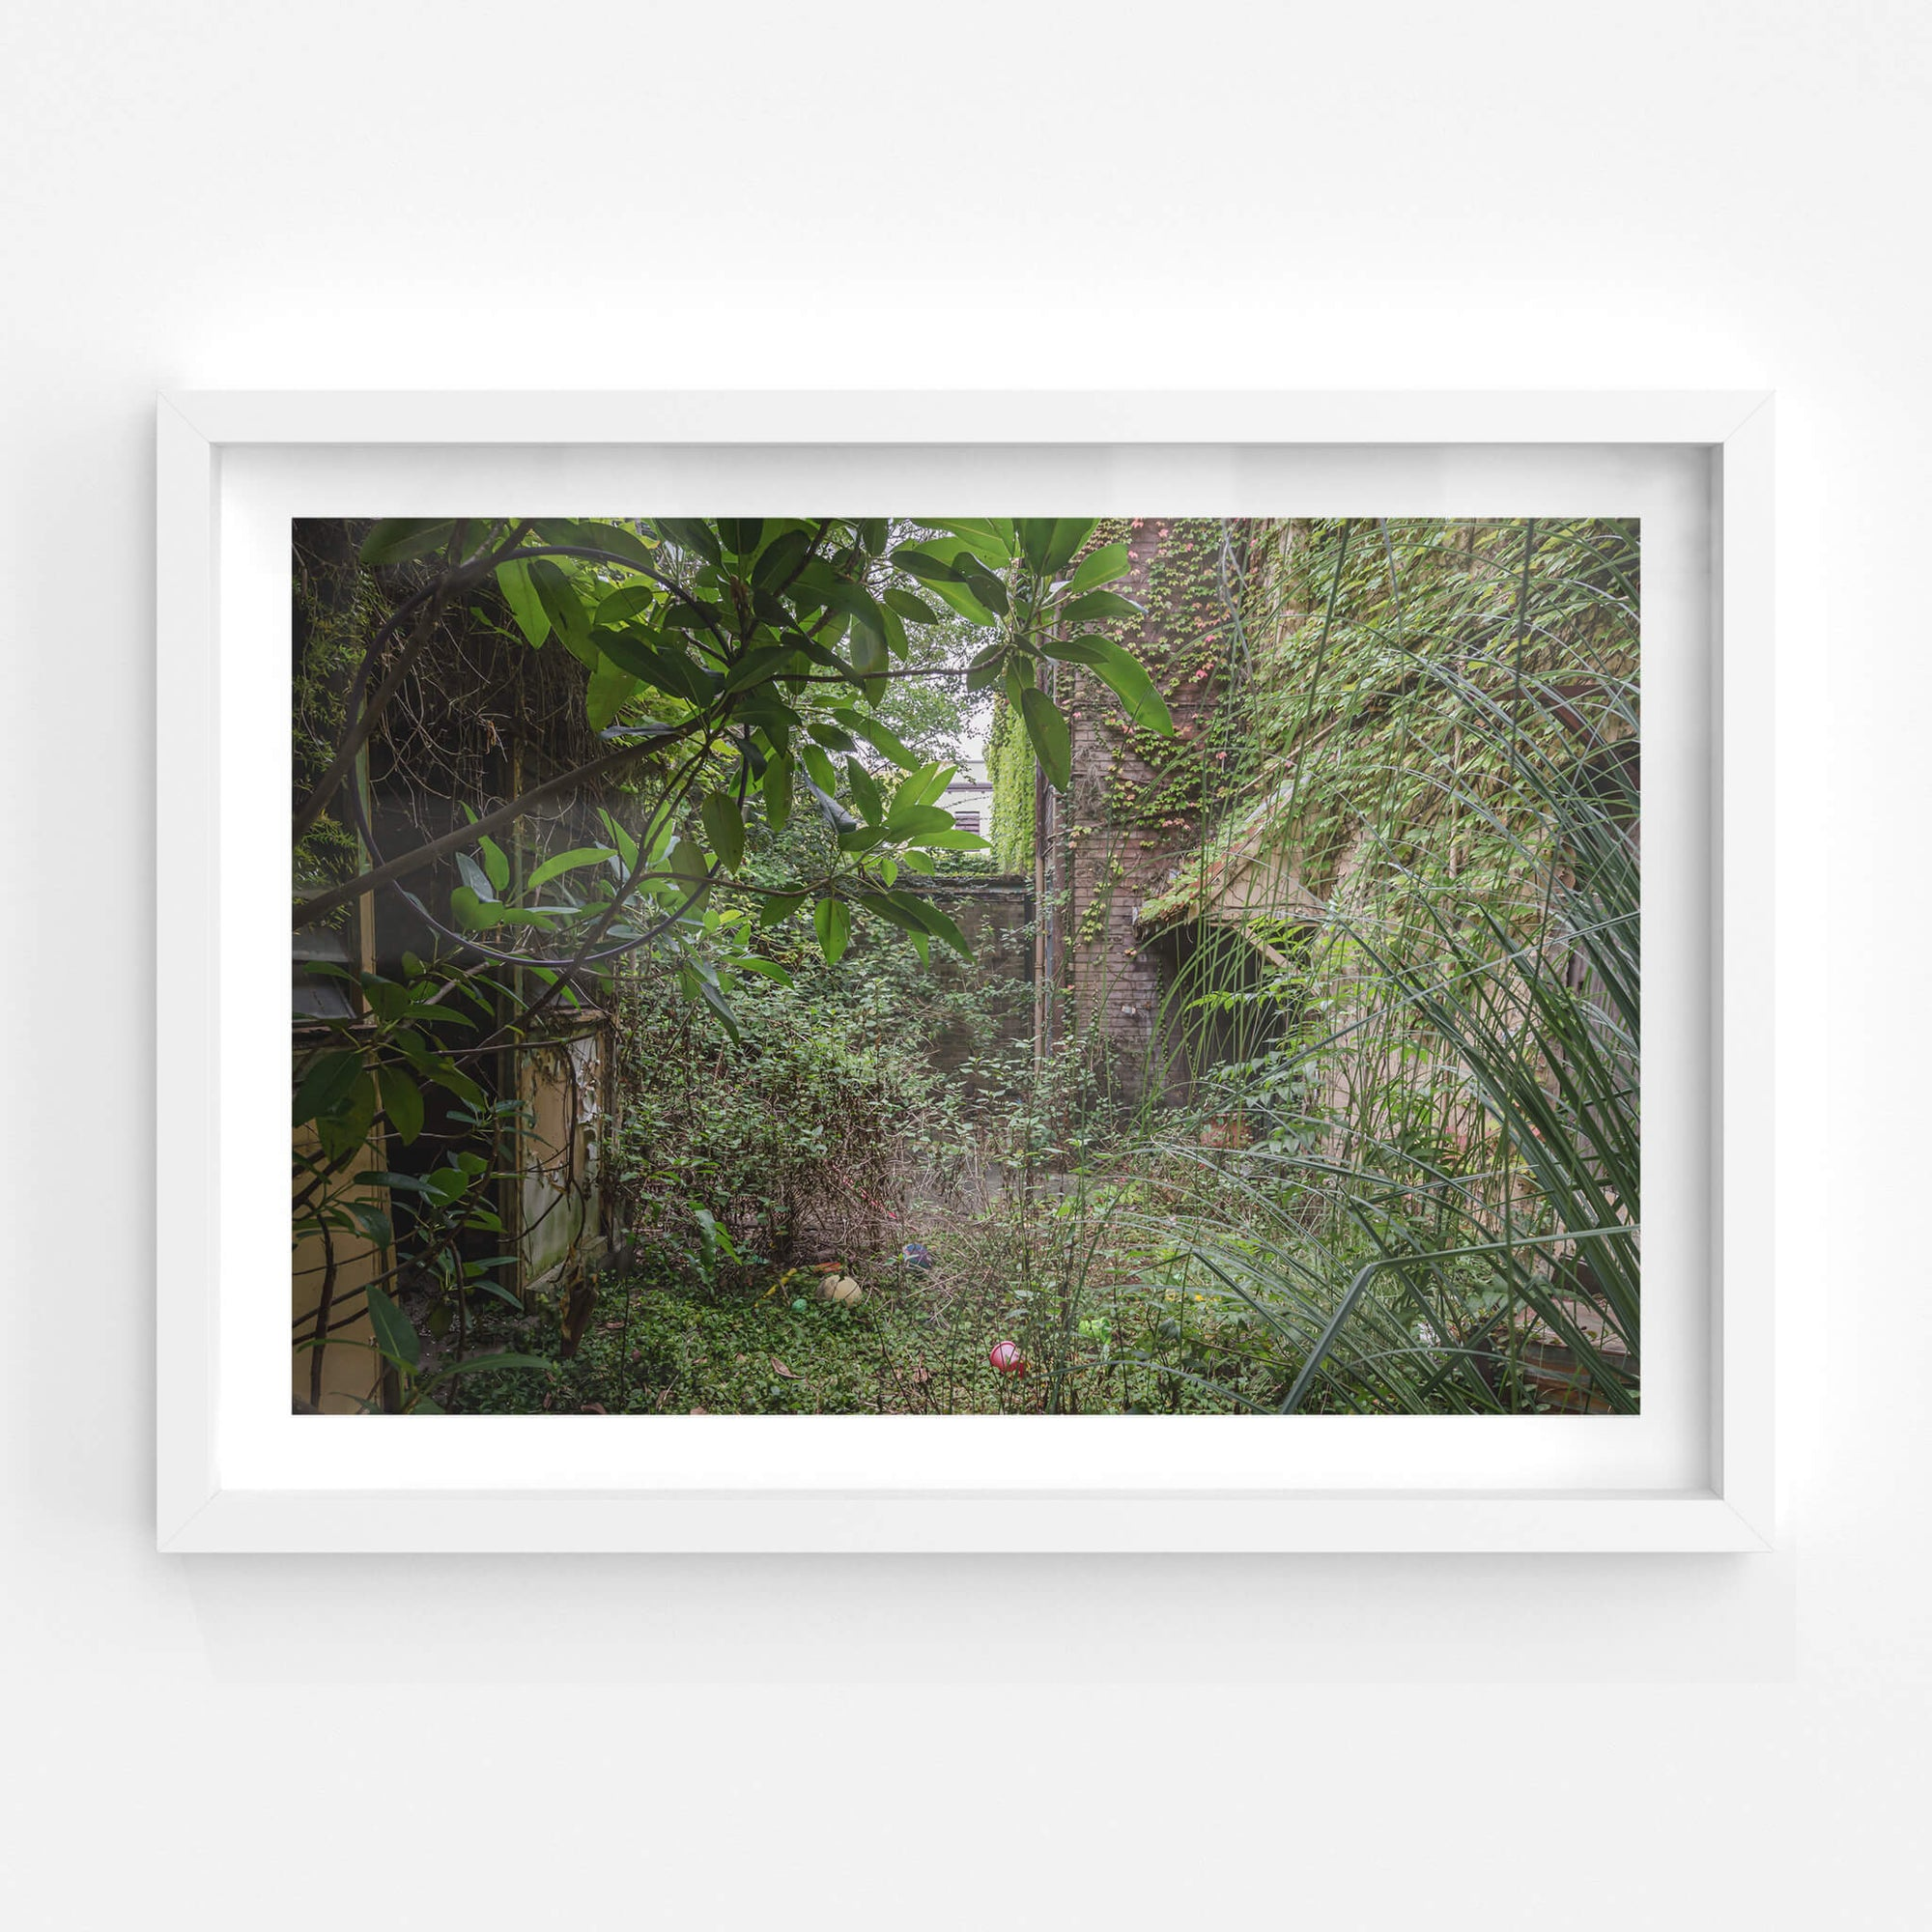 Nature Always Finds A Way | Terminus Hotel Fine Art Print - Lost Collective Shop